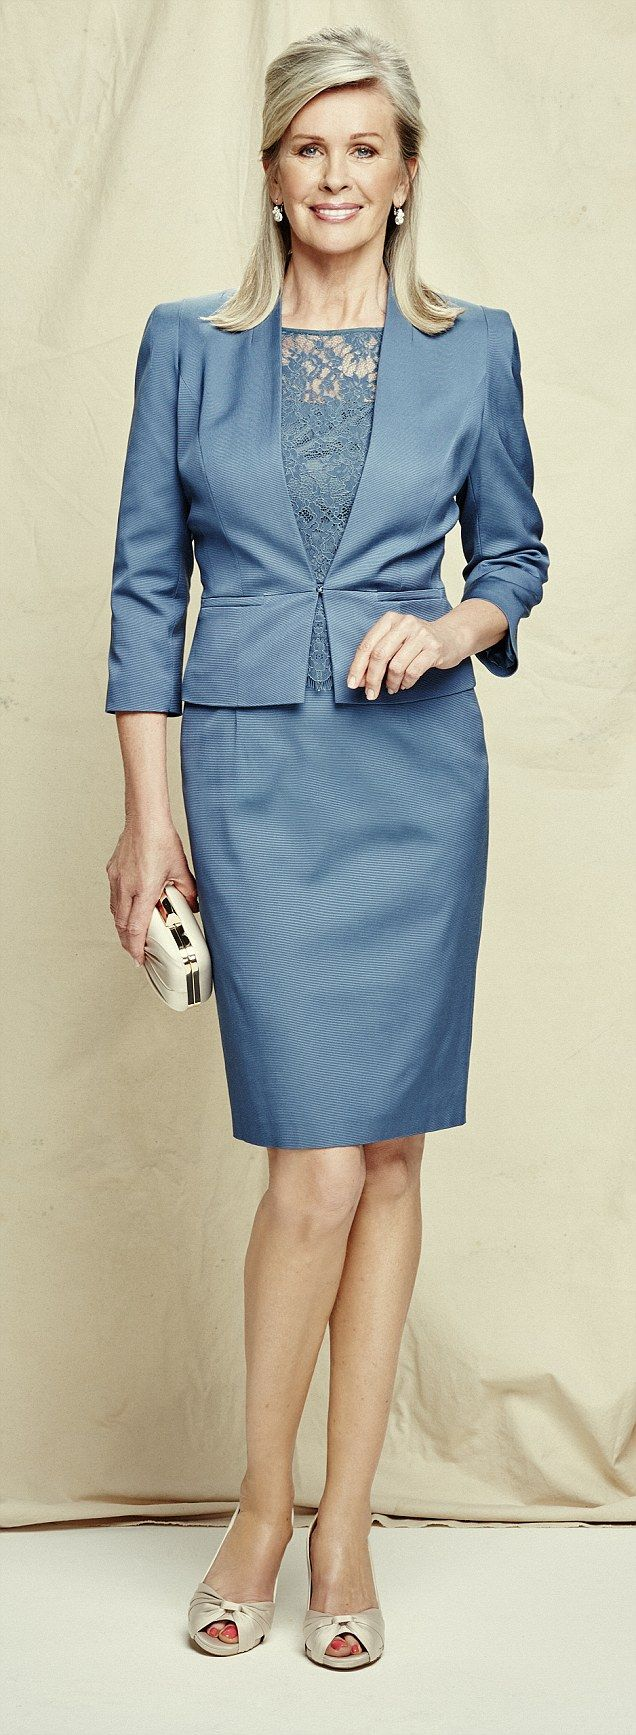 How to be the best-dressed wedding guest...for less | Clutch bags ...